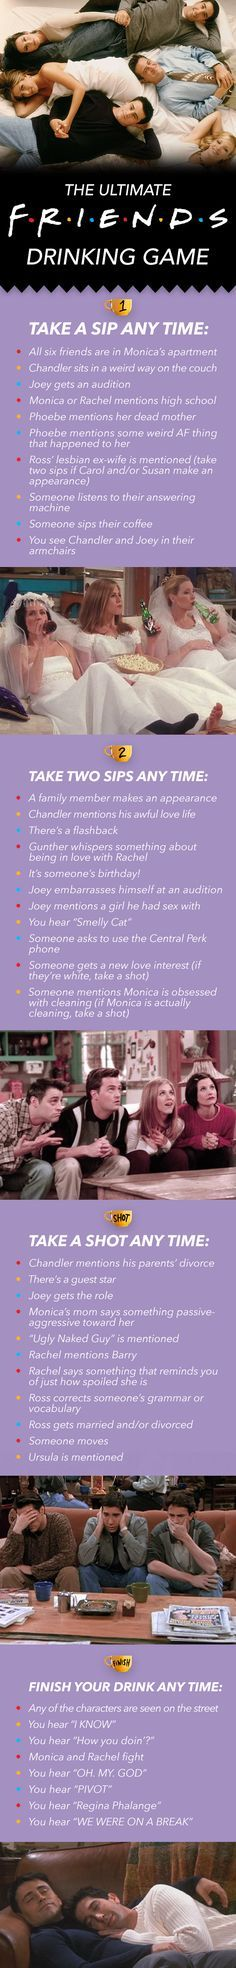 "The Ultimate ""Friends"" Drinking Game"